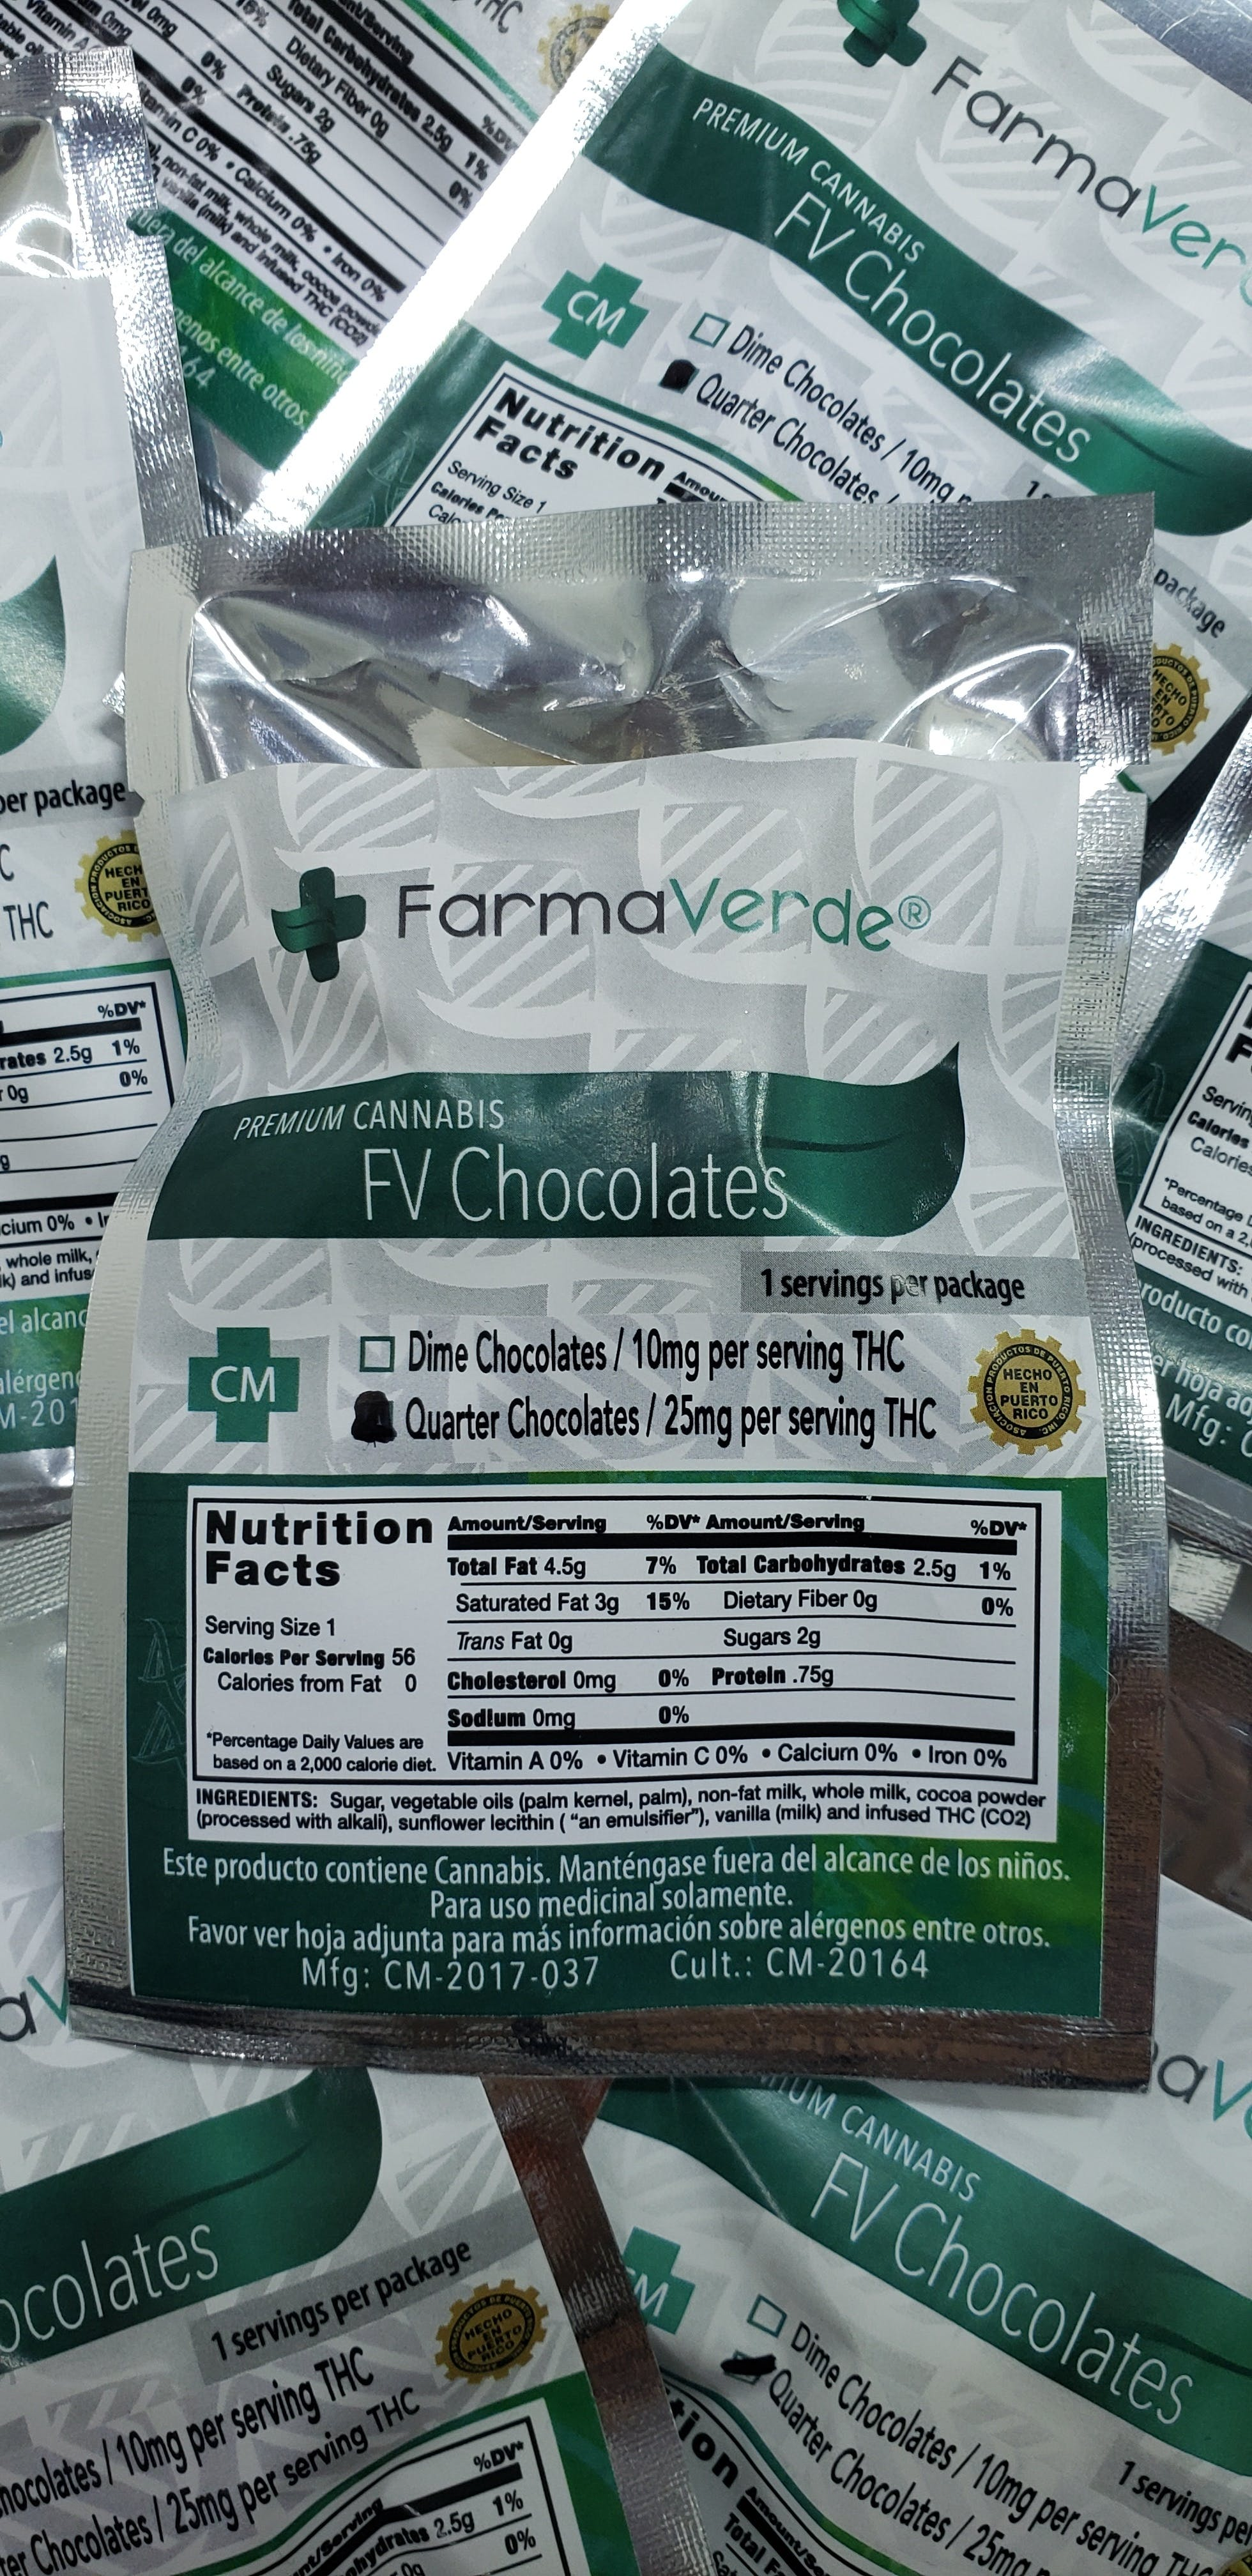 marijuana-dispensaries-103-av-universidad-suite-233-san-juan-chocolate-quarter-25mg